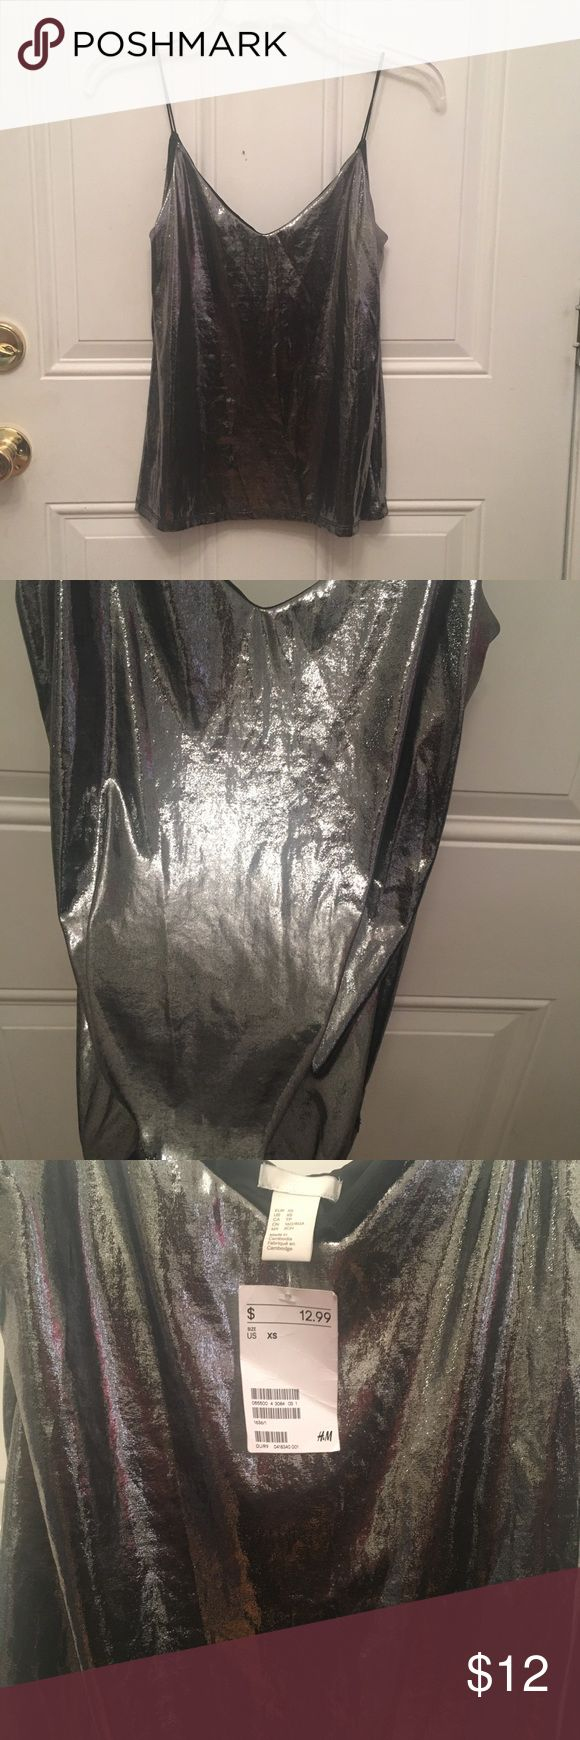 Metallic cami from H&M Metallic silver cami from H&M. Never worn, no visible markings or stains. Tag still attached. Price is evenly adjusted to what I paid with shipping and handling. H&M Tops Camisoles